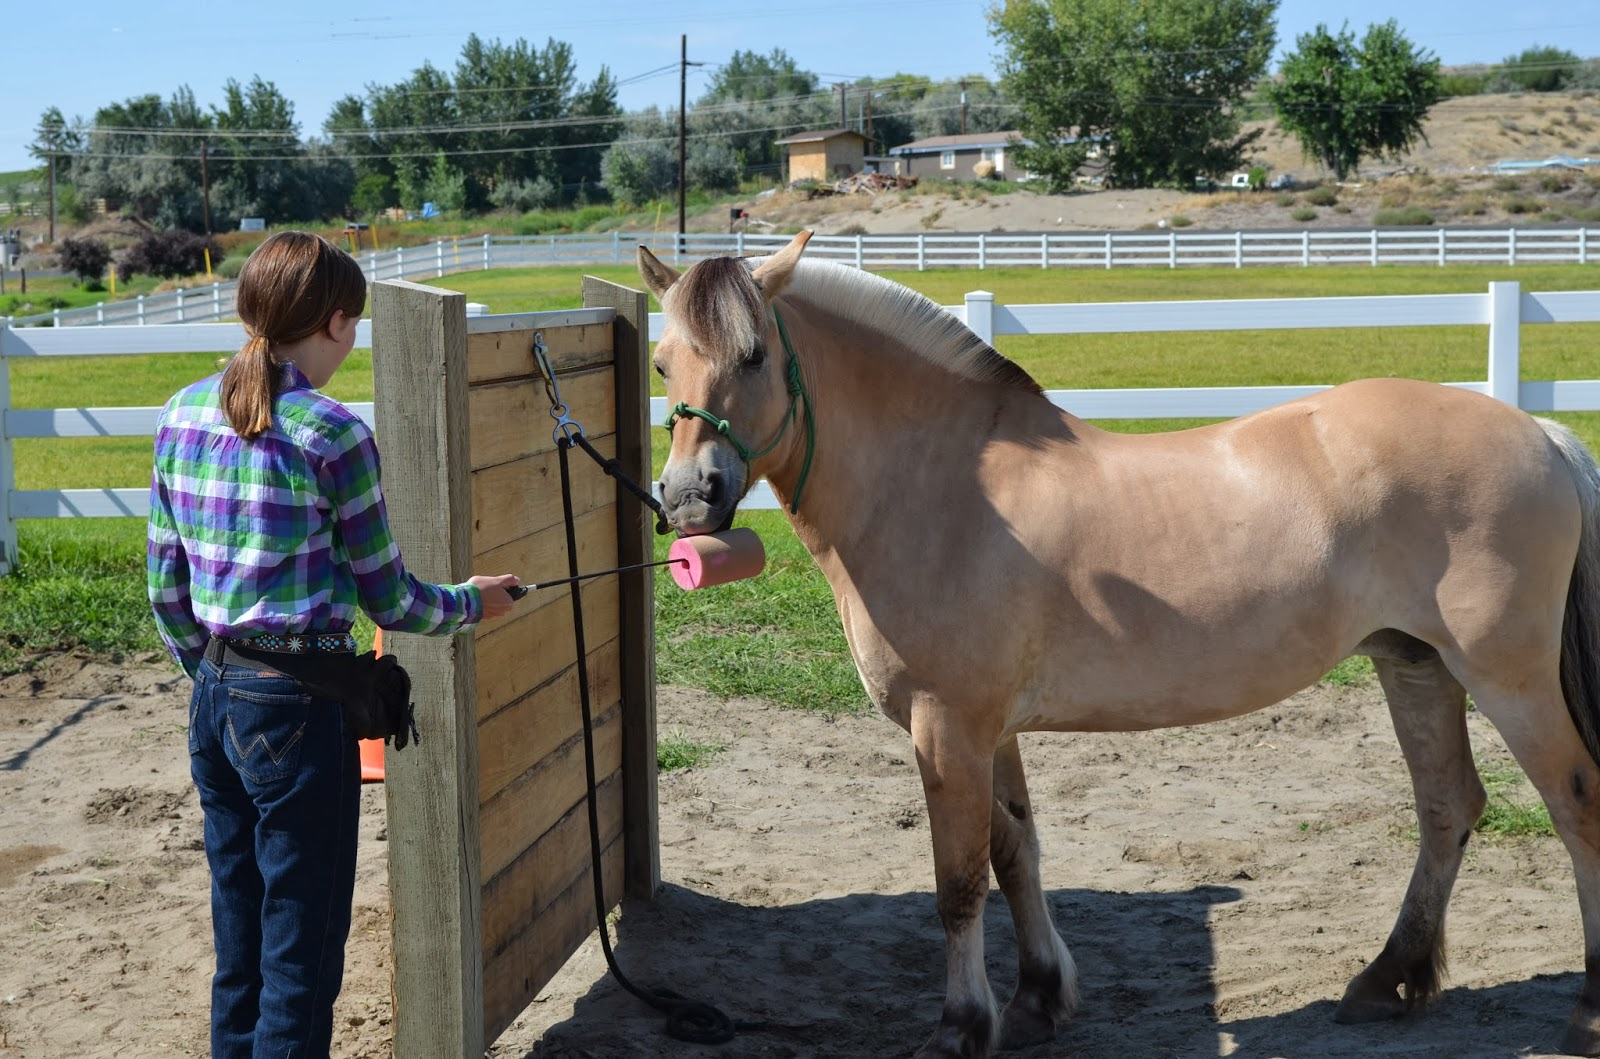 Clicker training a horse to target